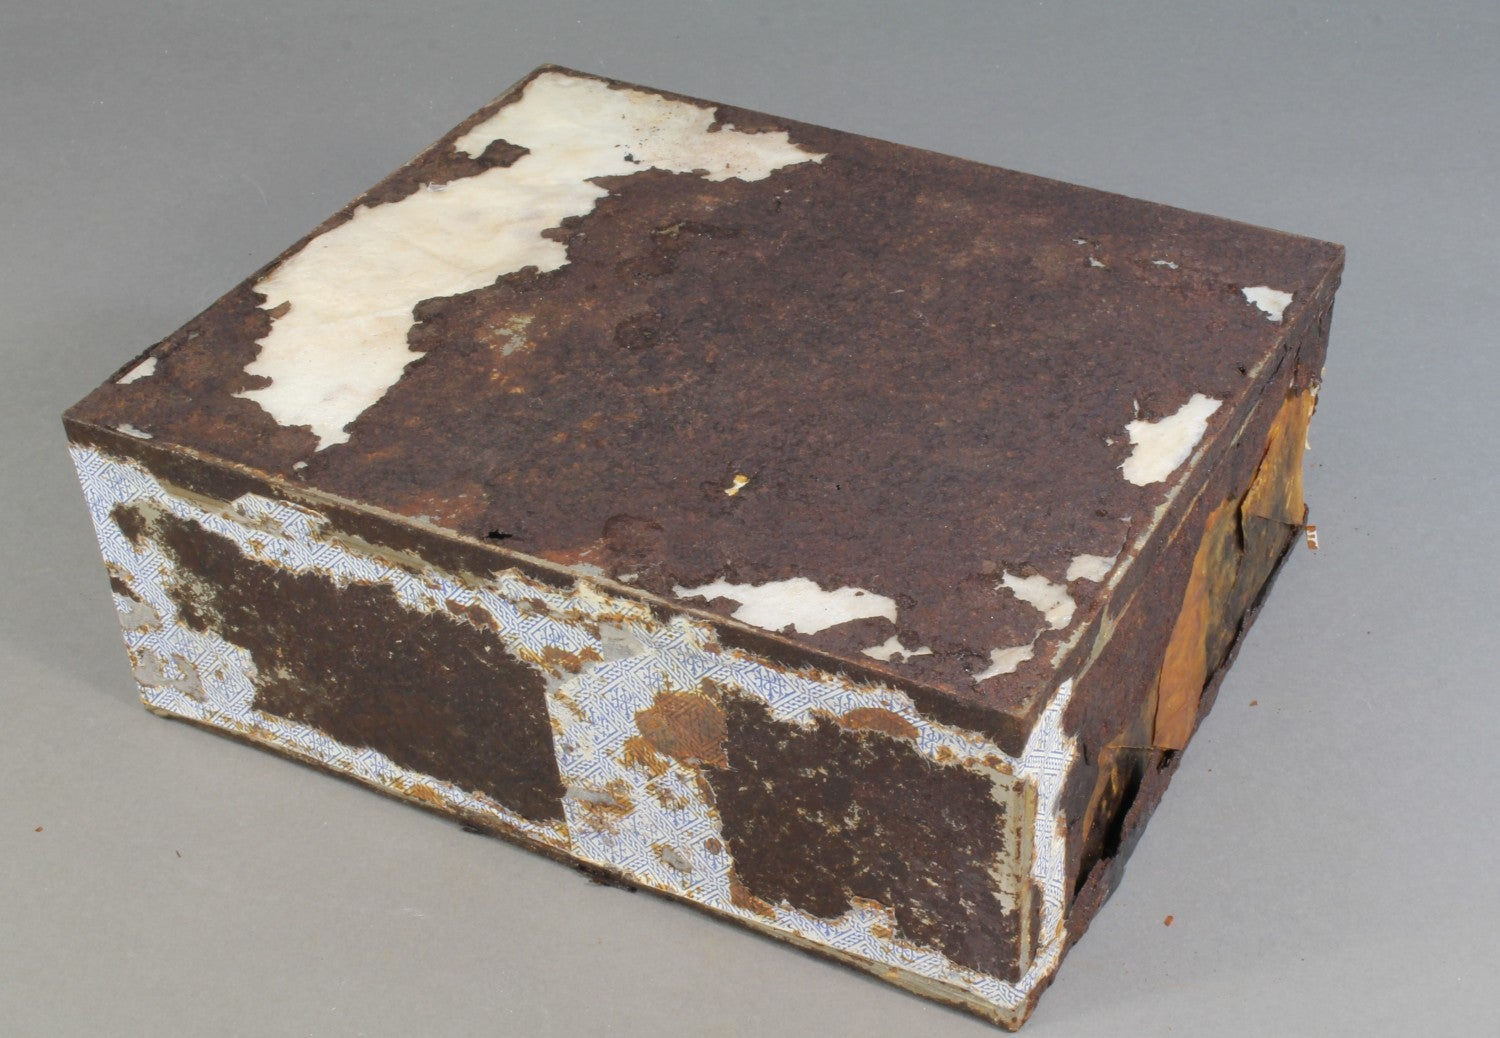 The cake tin had fared worse than the actual cake. (Credit: Antarctic Heritage Trust)